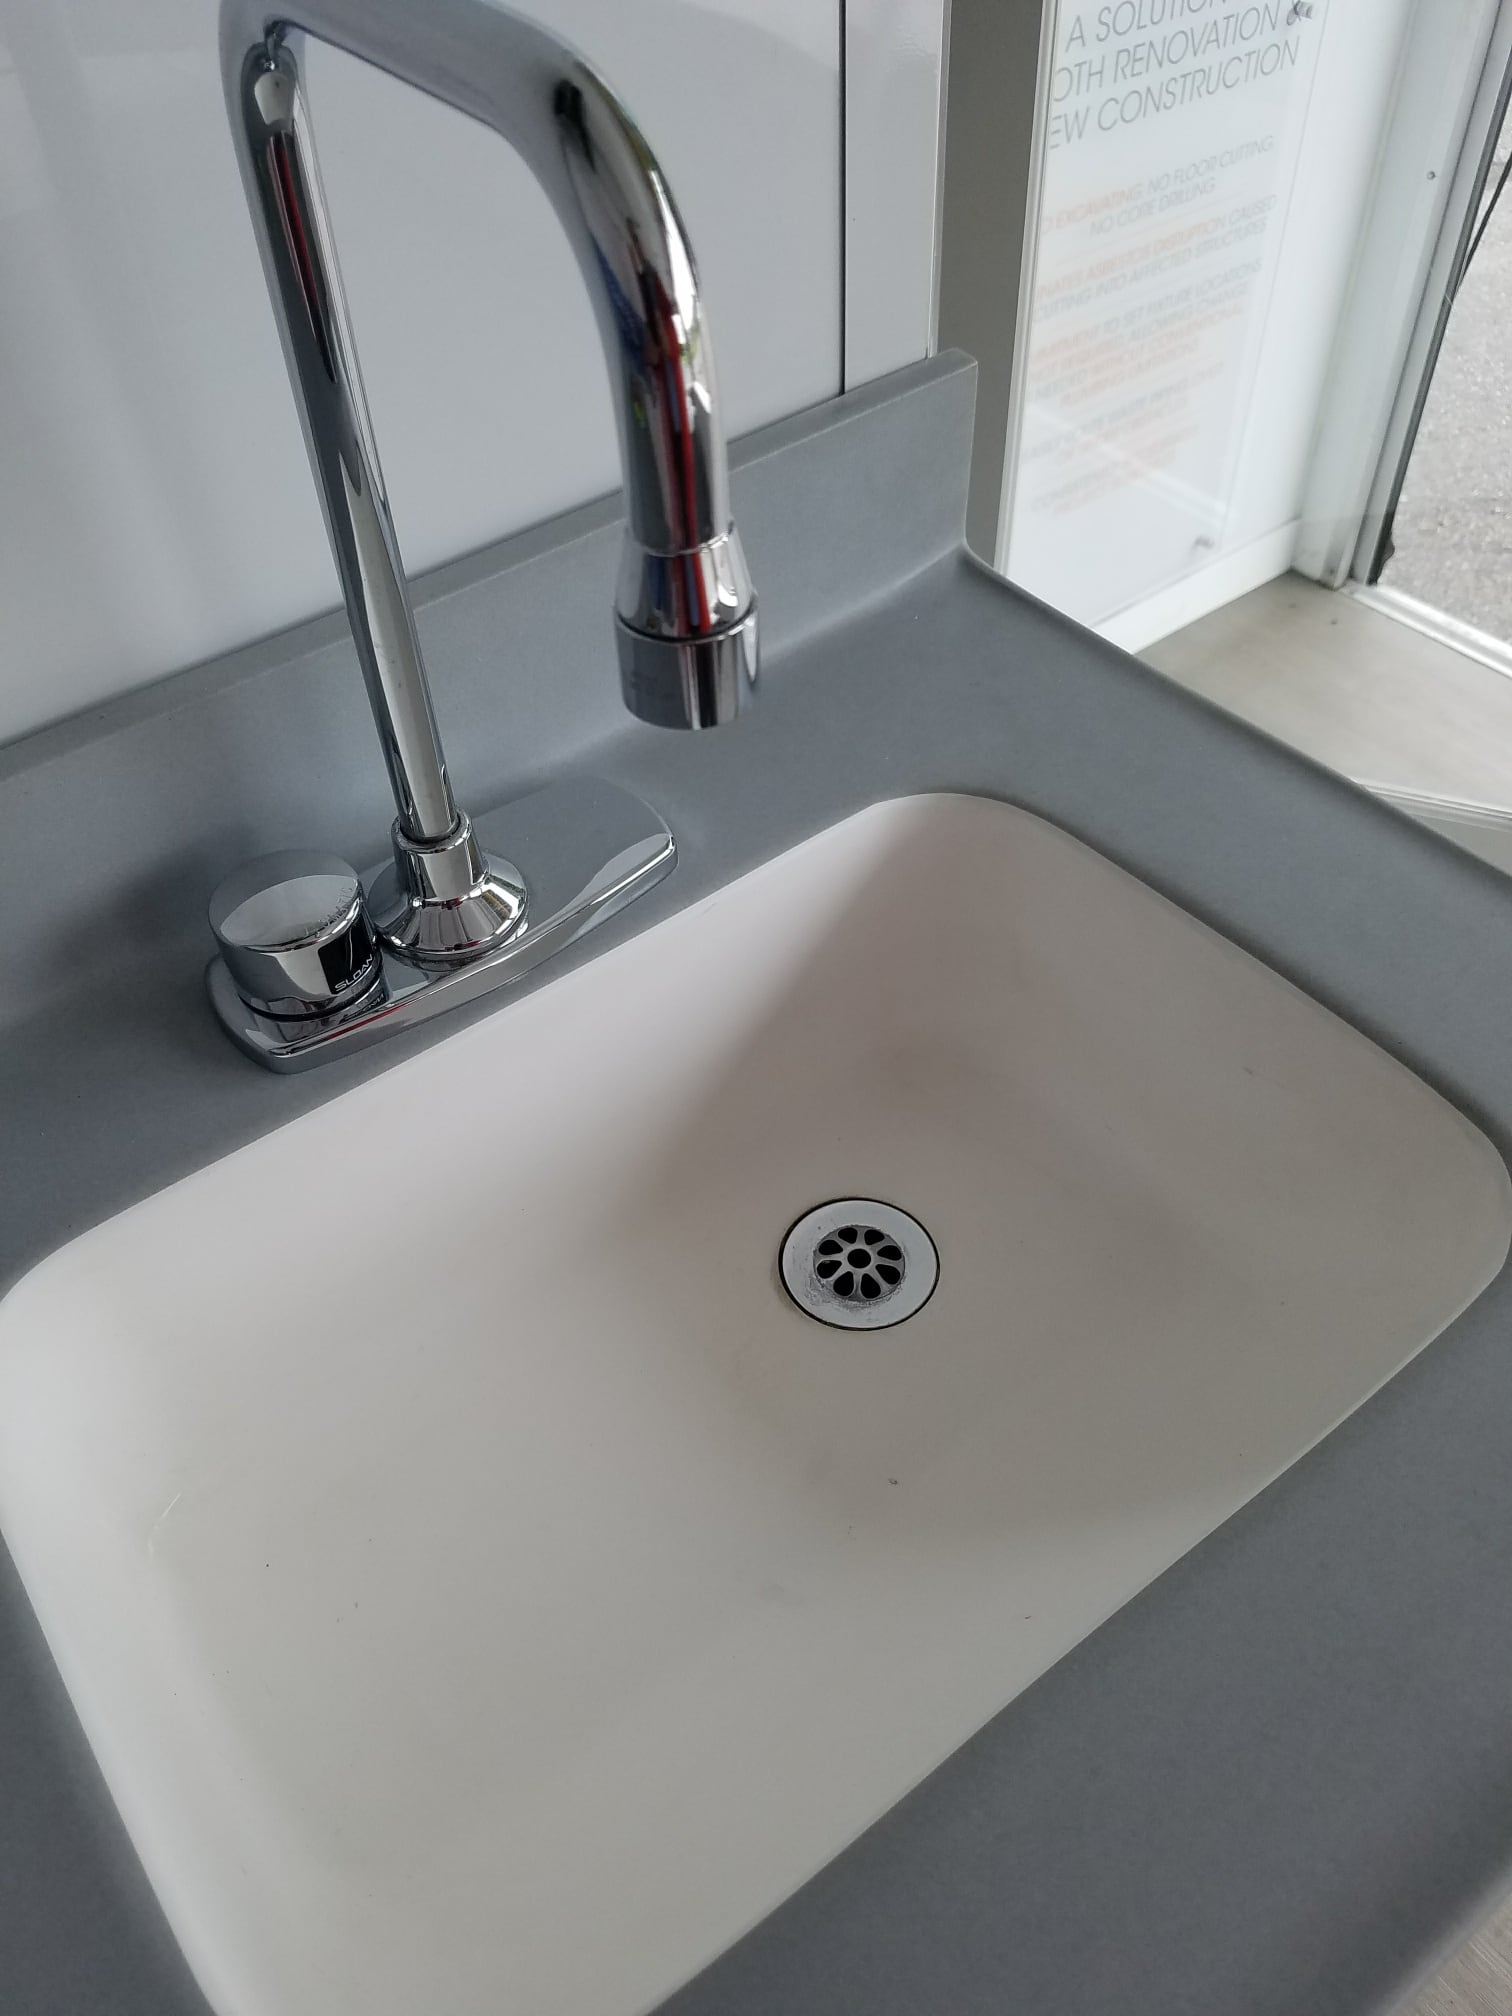 Whitehall's non-porous solid surface sinks are seamless throughout